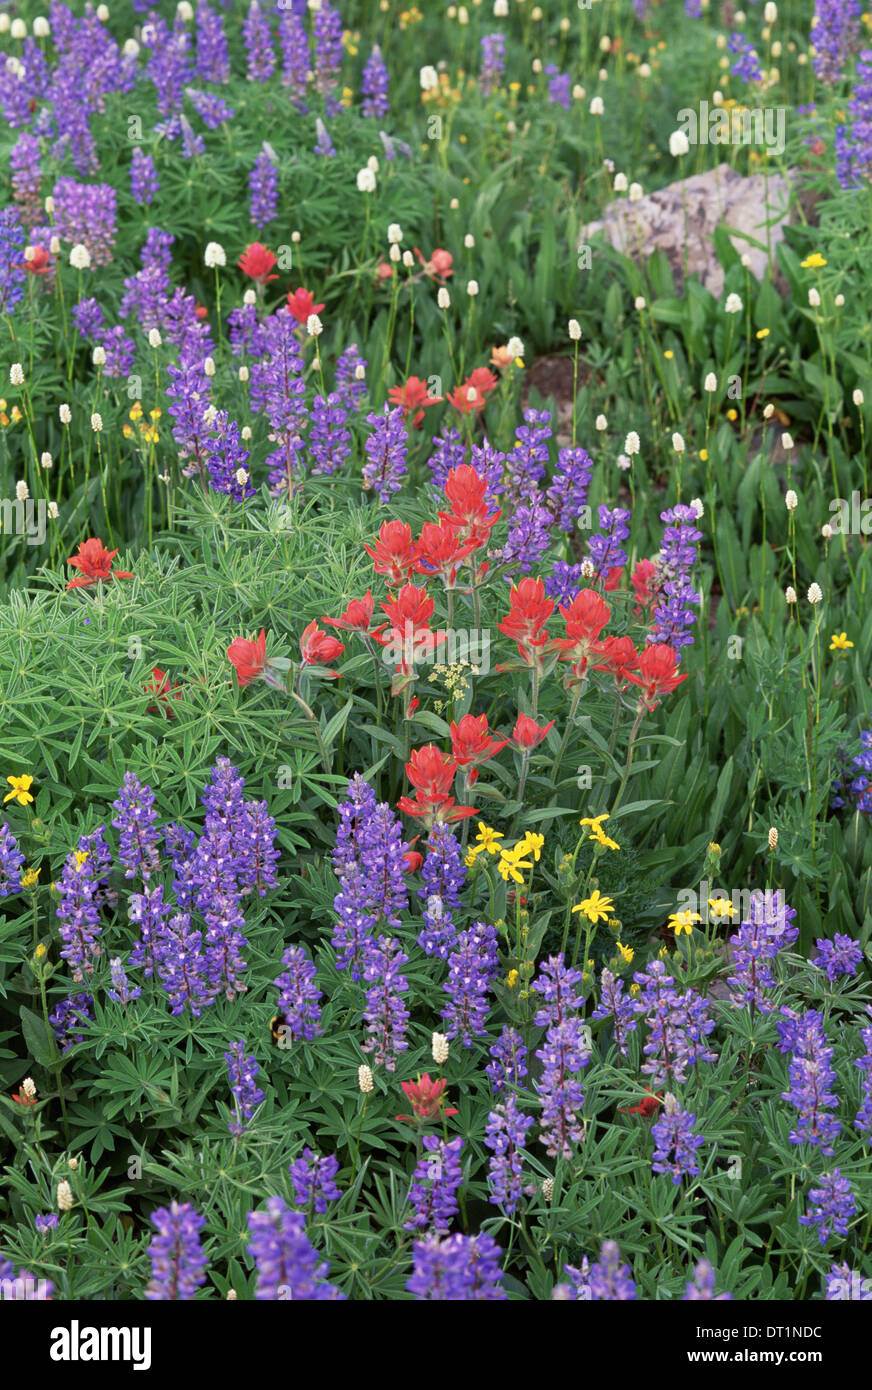 A field of mountain wildflowers poppies and lupins in the Wasatch mountains - Stock Image